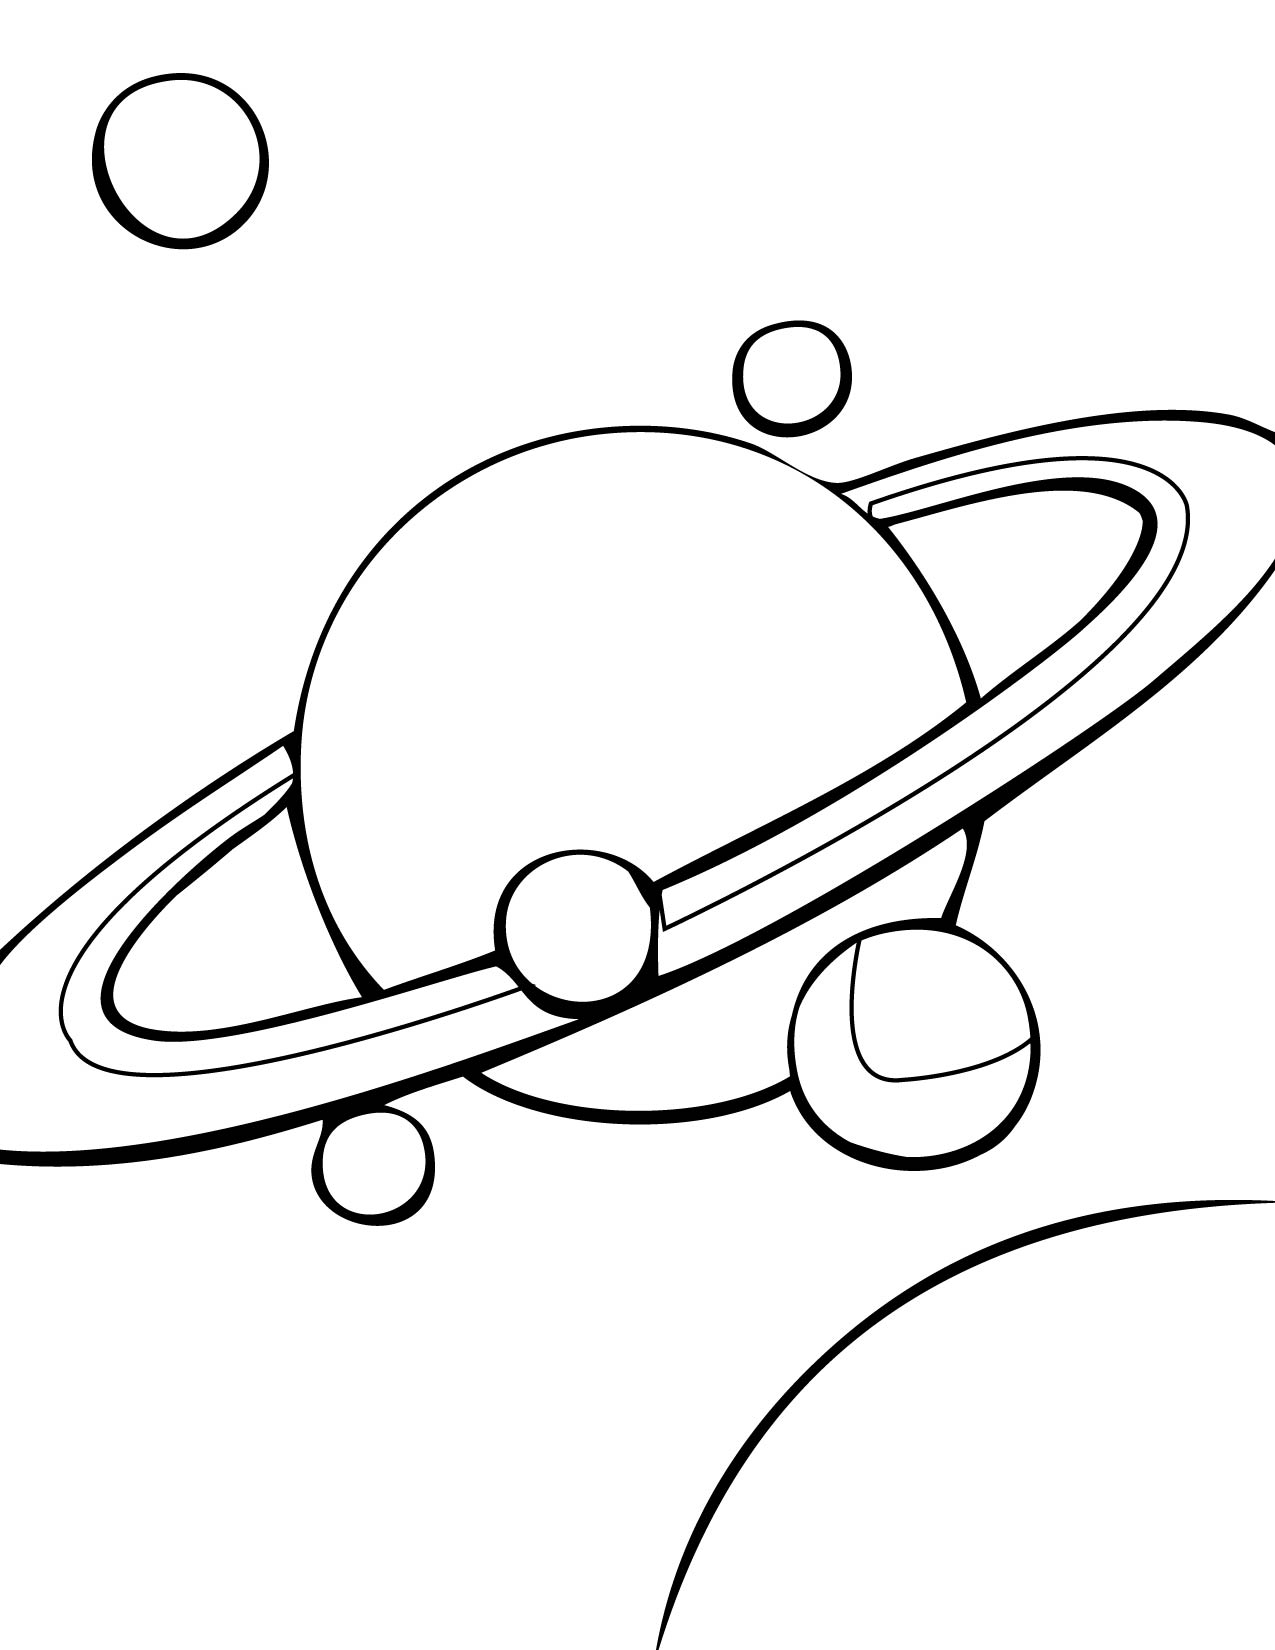 solar system black and white clipart - photo #4